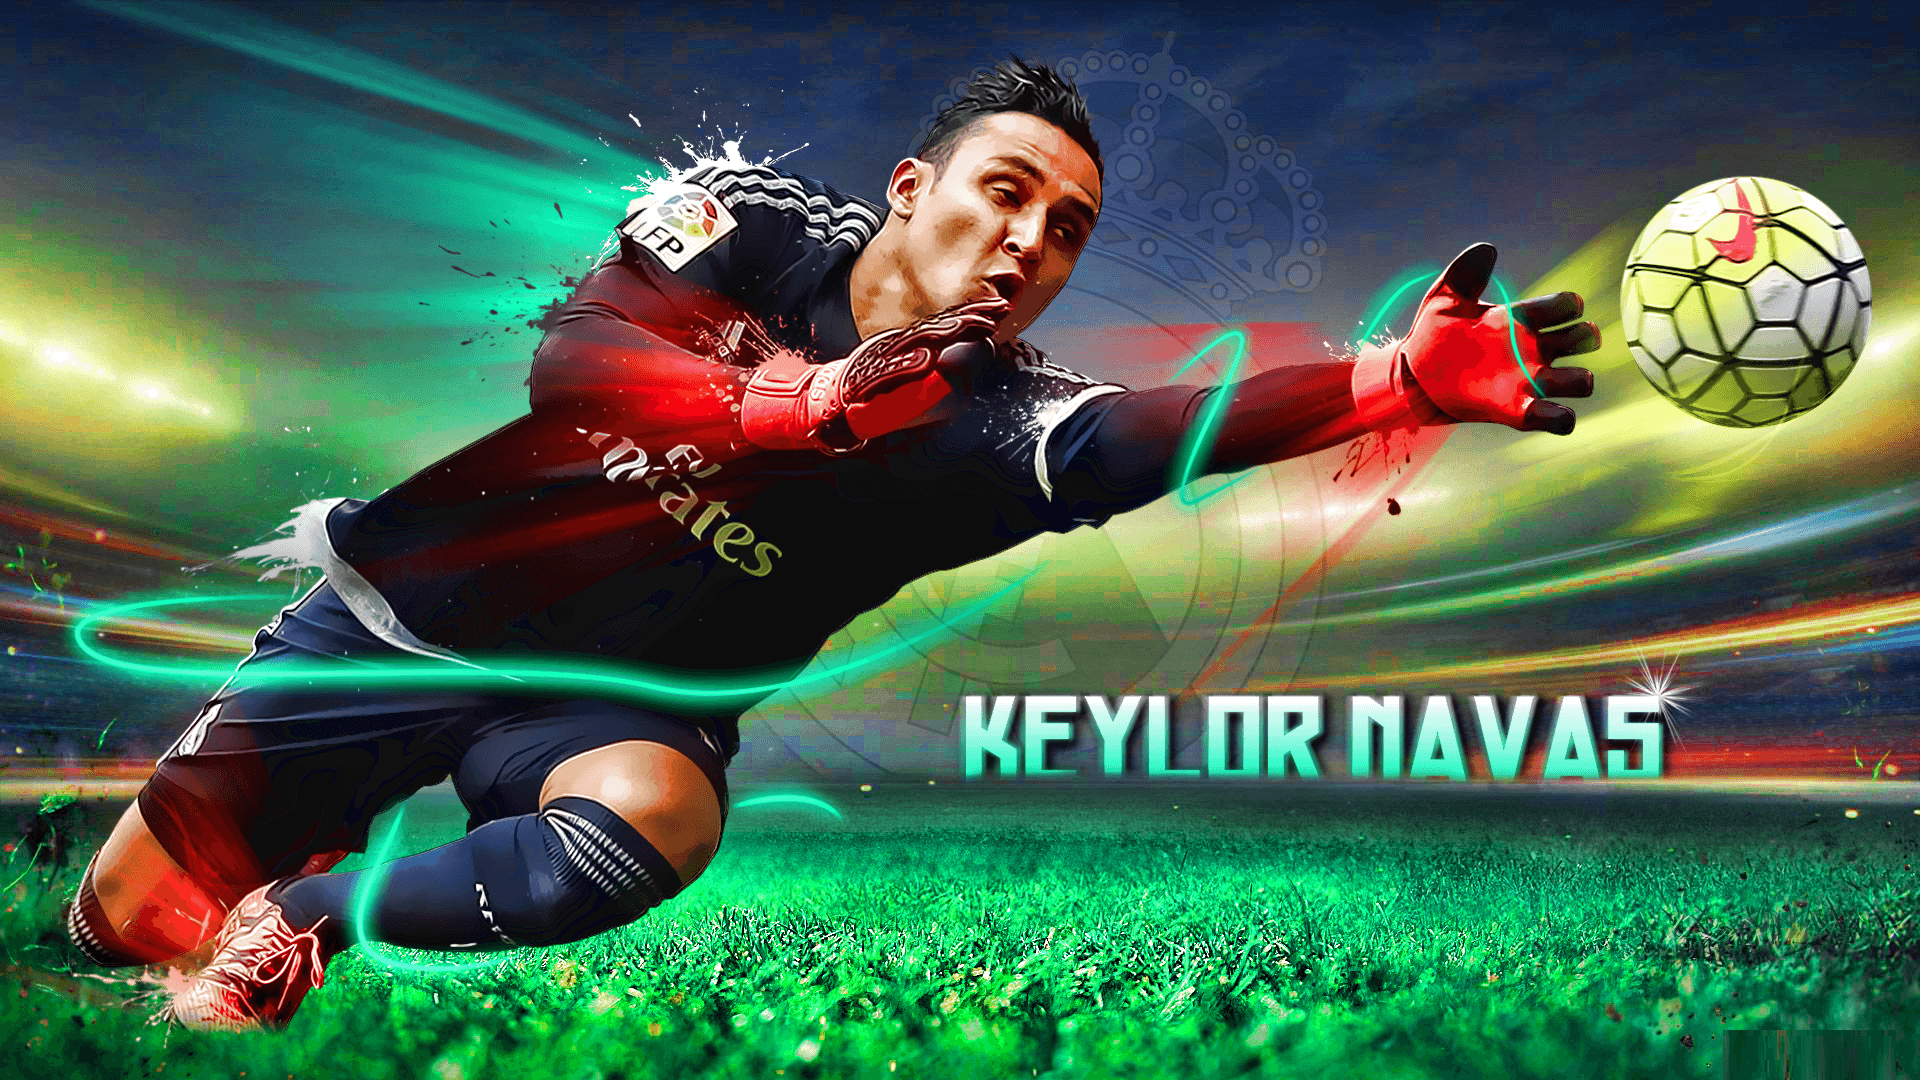 Keylor Navas HD Pictures - New HD Images